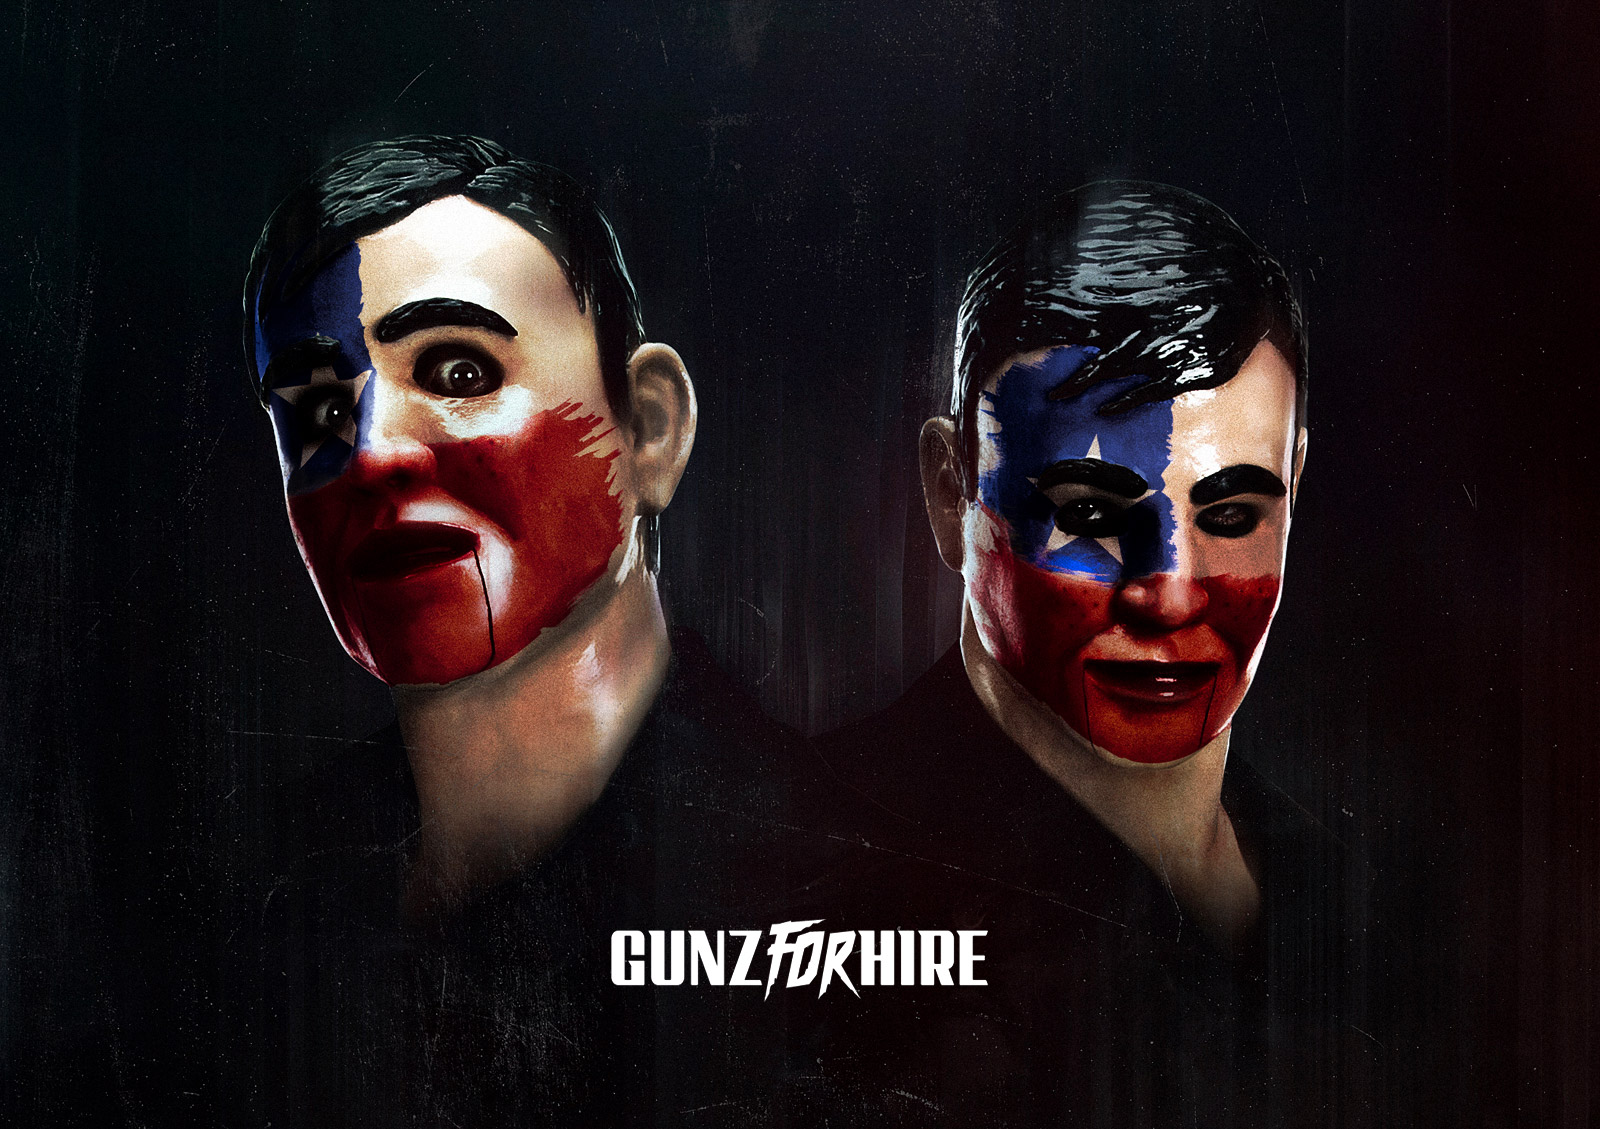 gunz for hire painted faces 1988 painted faces anxious color